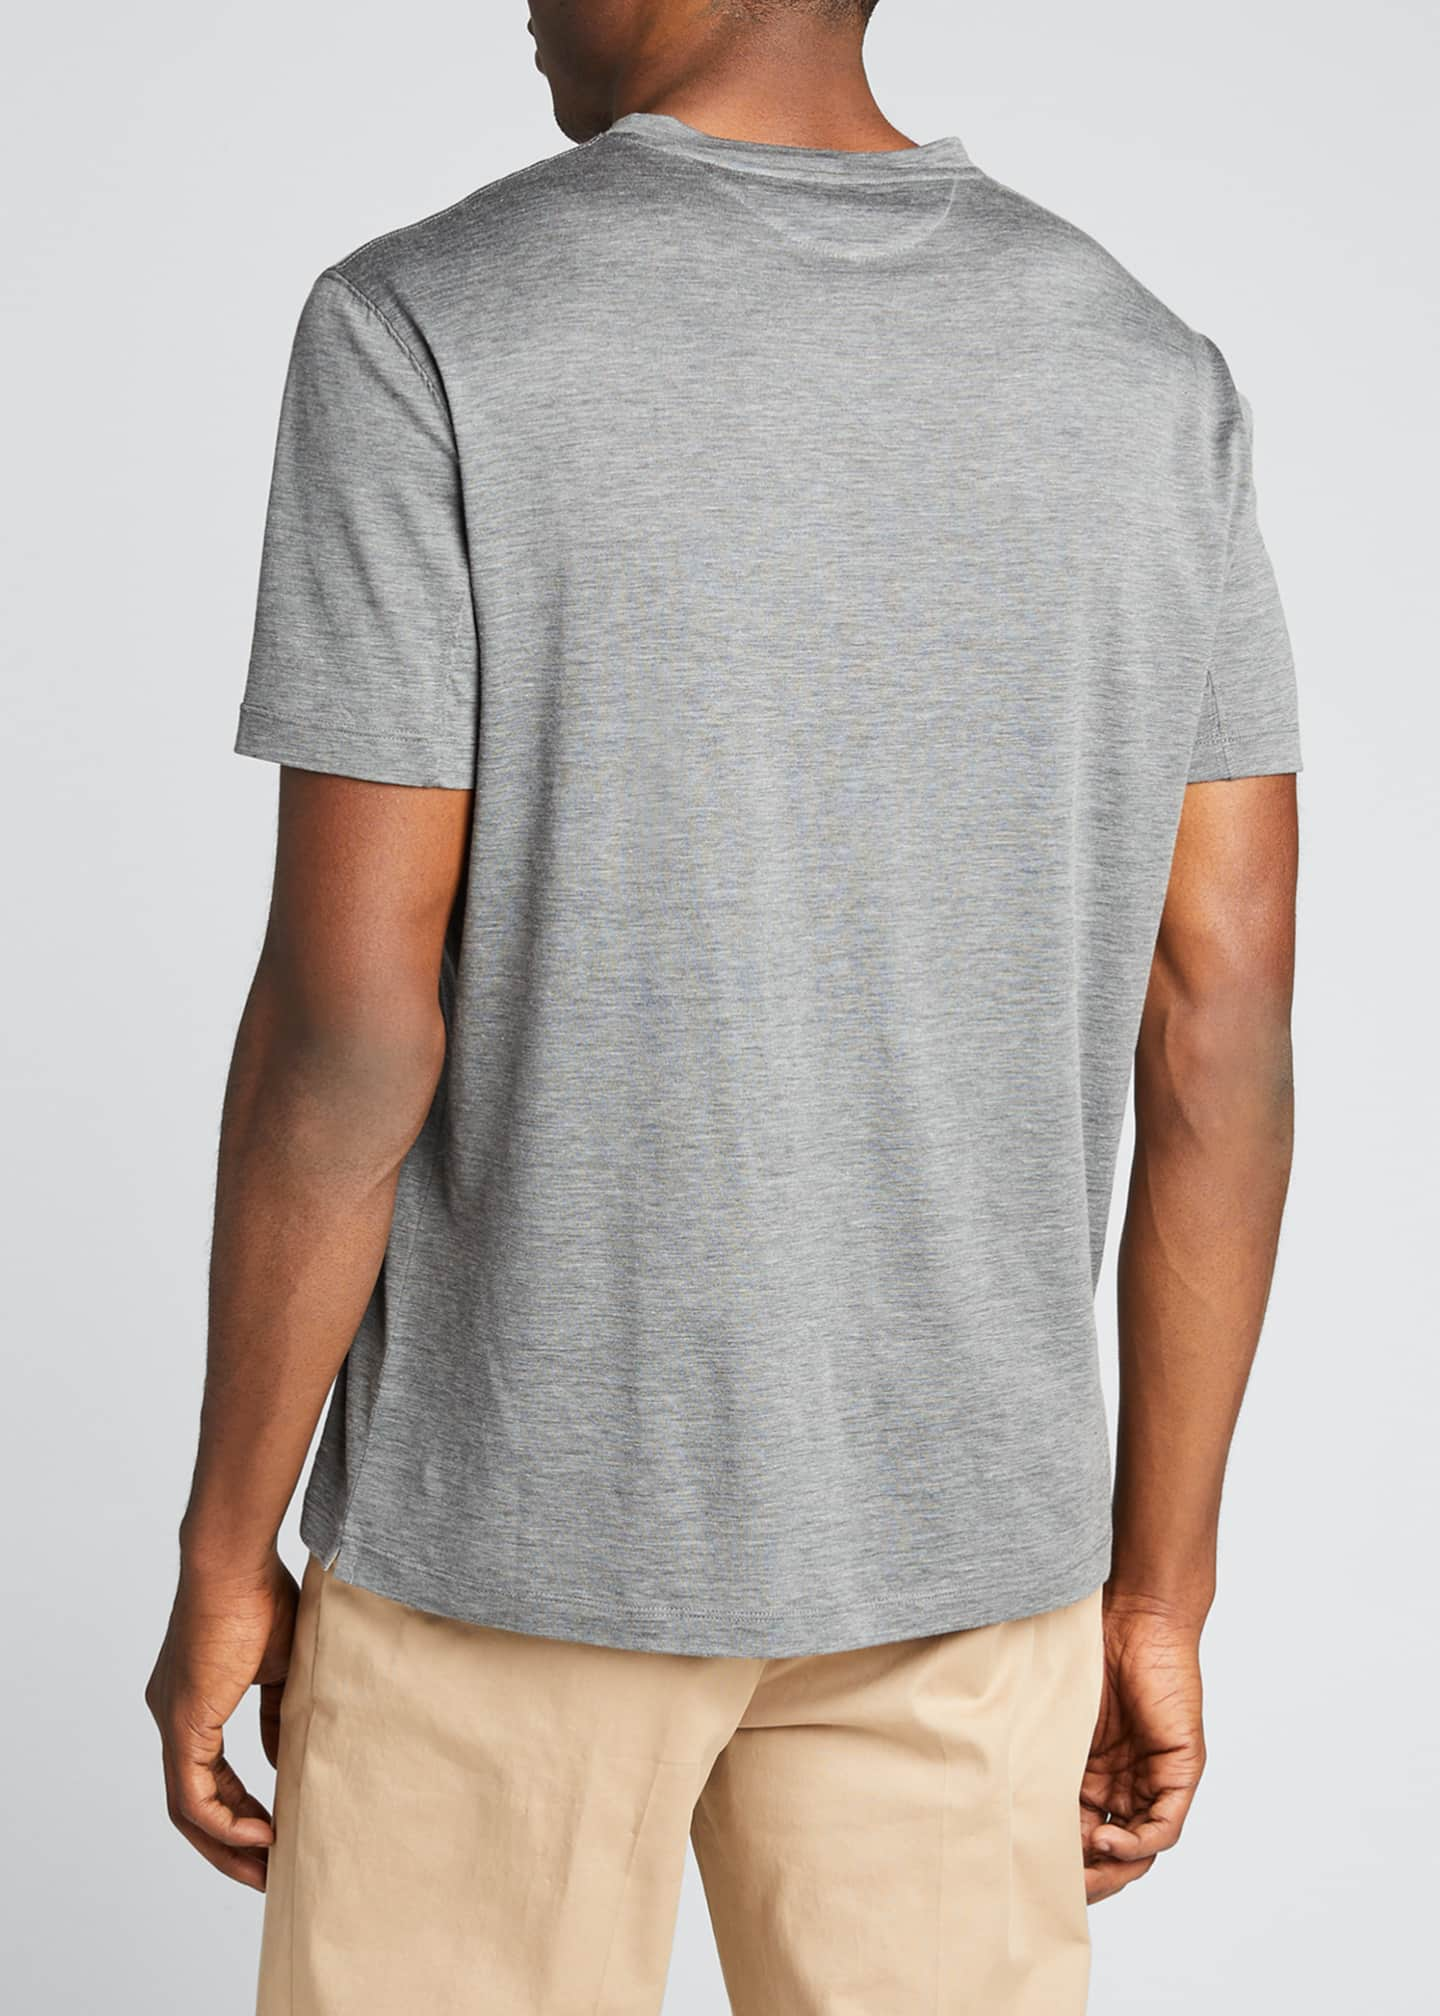 Image 2 of 5: Men's V-Neck Short-Sleeve Sweater T-Shirt